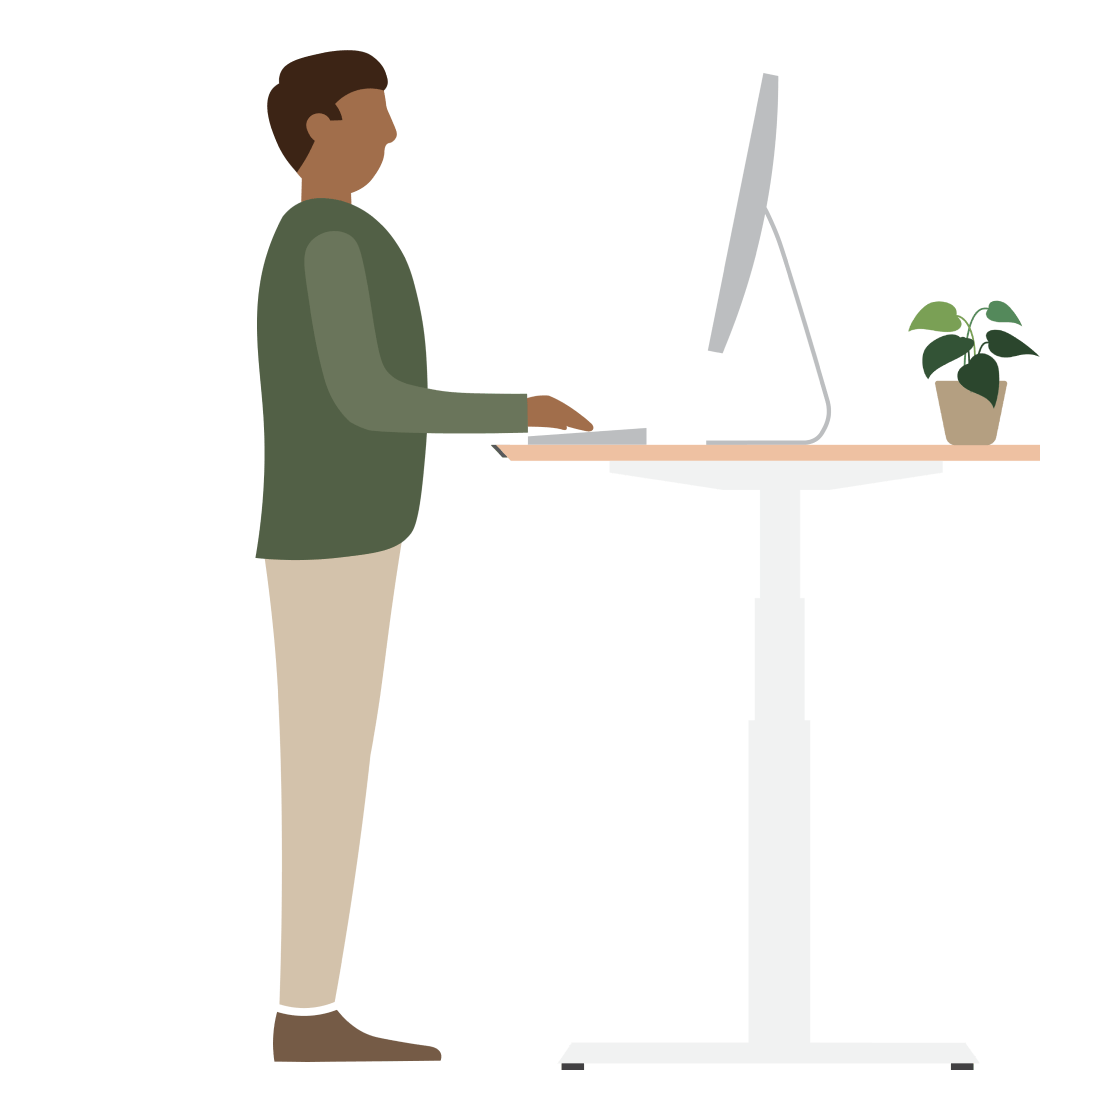 An illustration of a man standing at at a desk